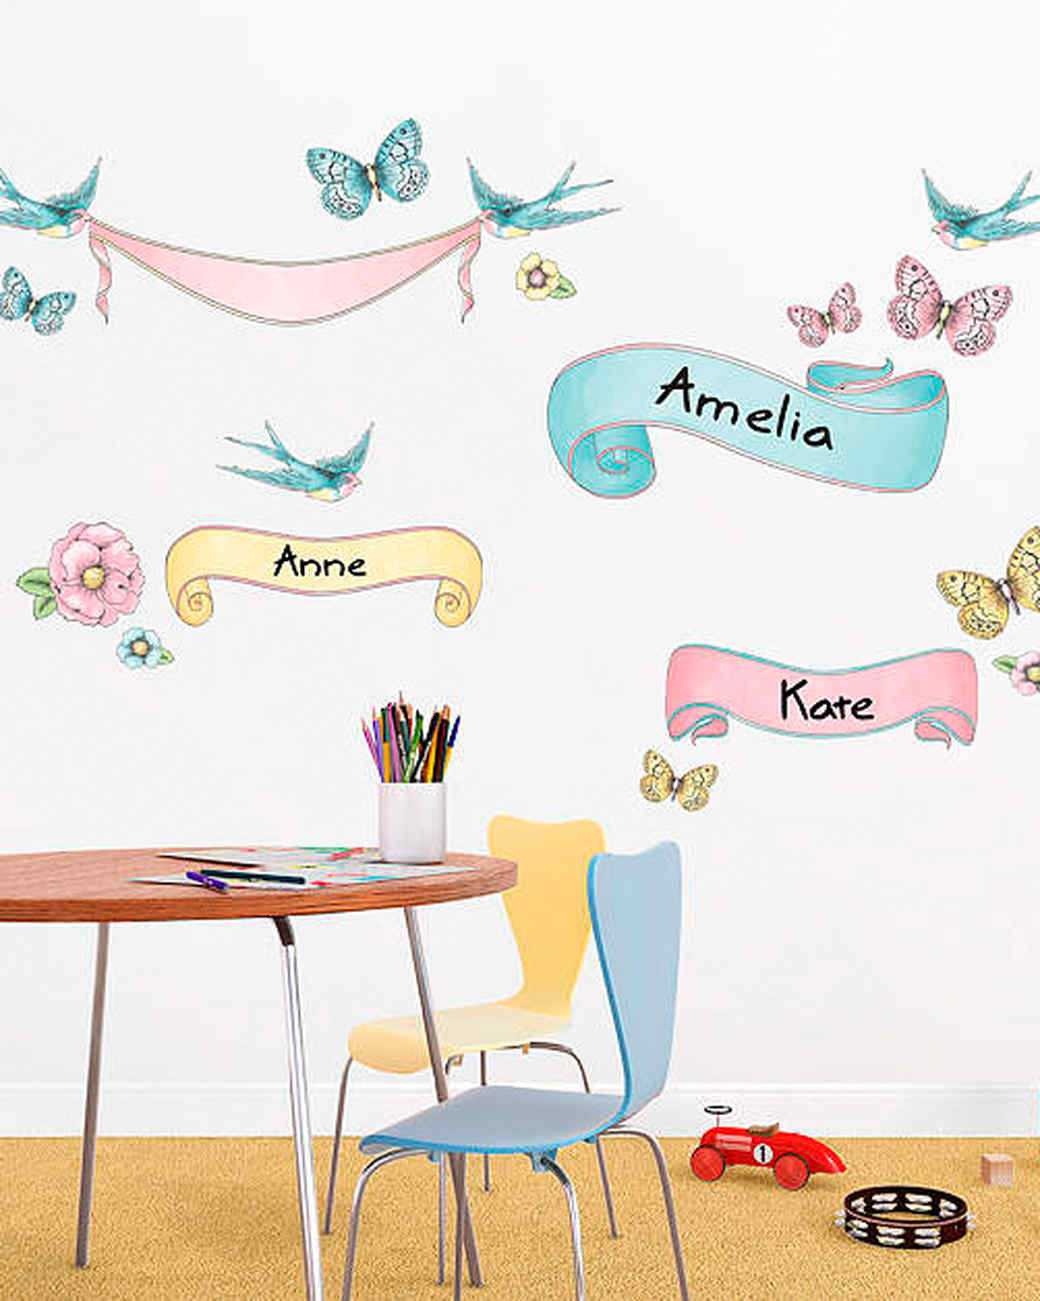 fathead-dry-erase-watercolor-birds-and-banners.jpg